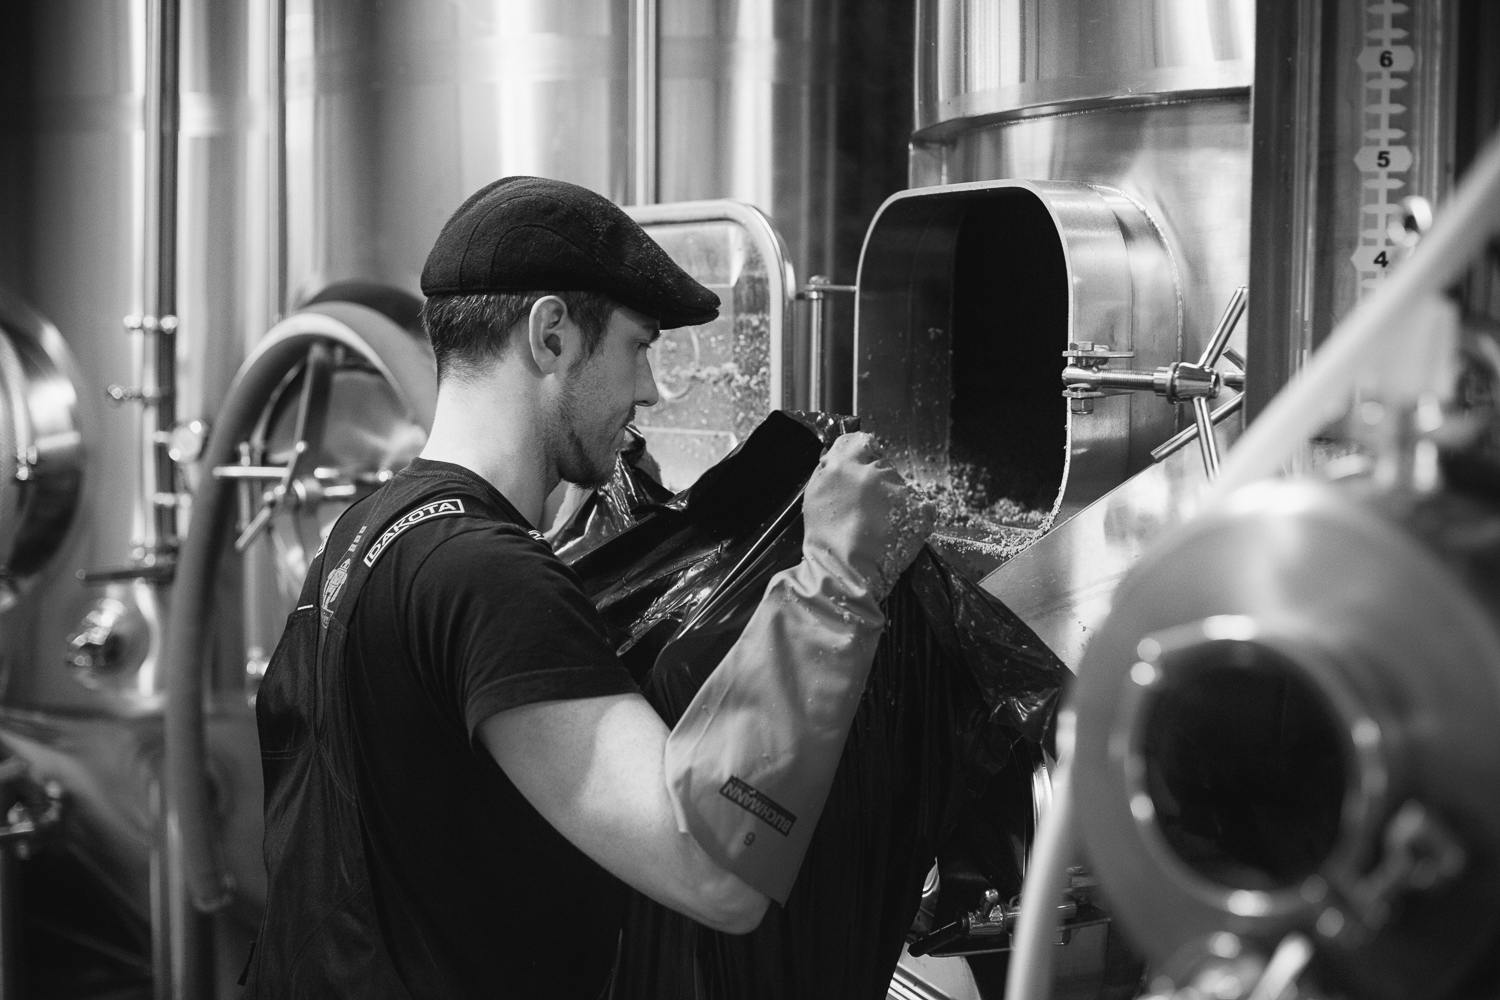 Callum of Halo Brewery cleaning.